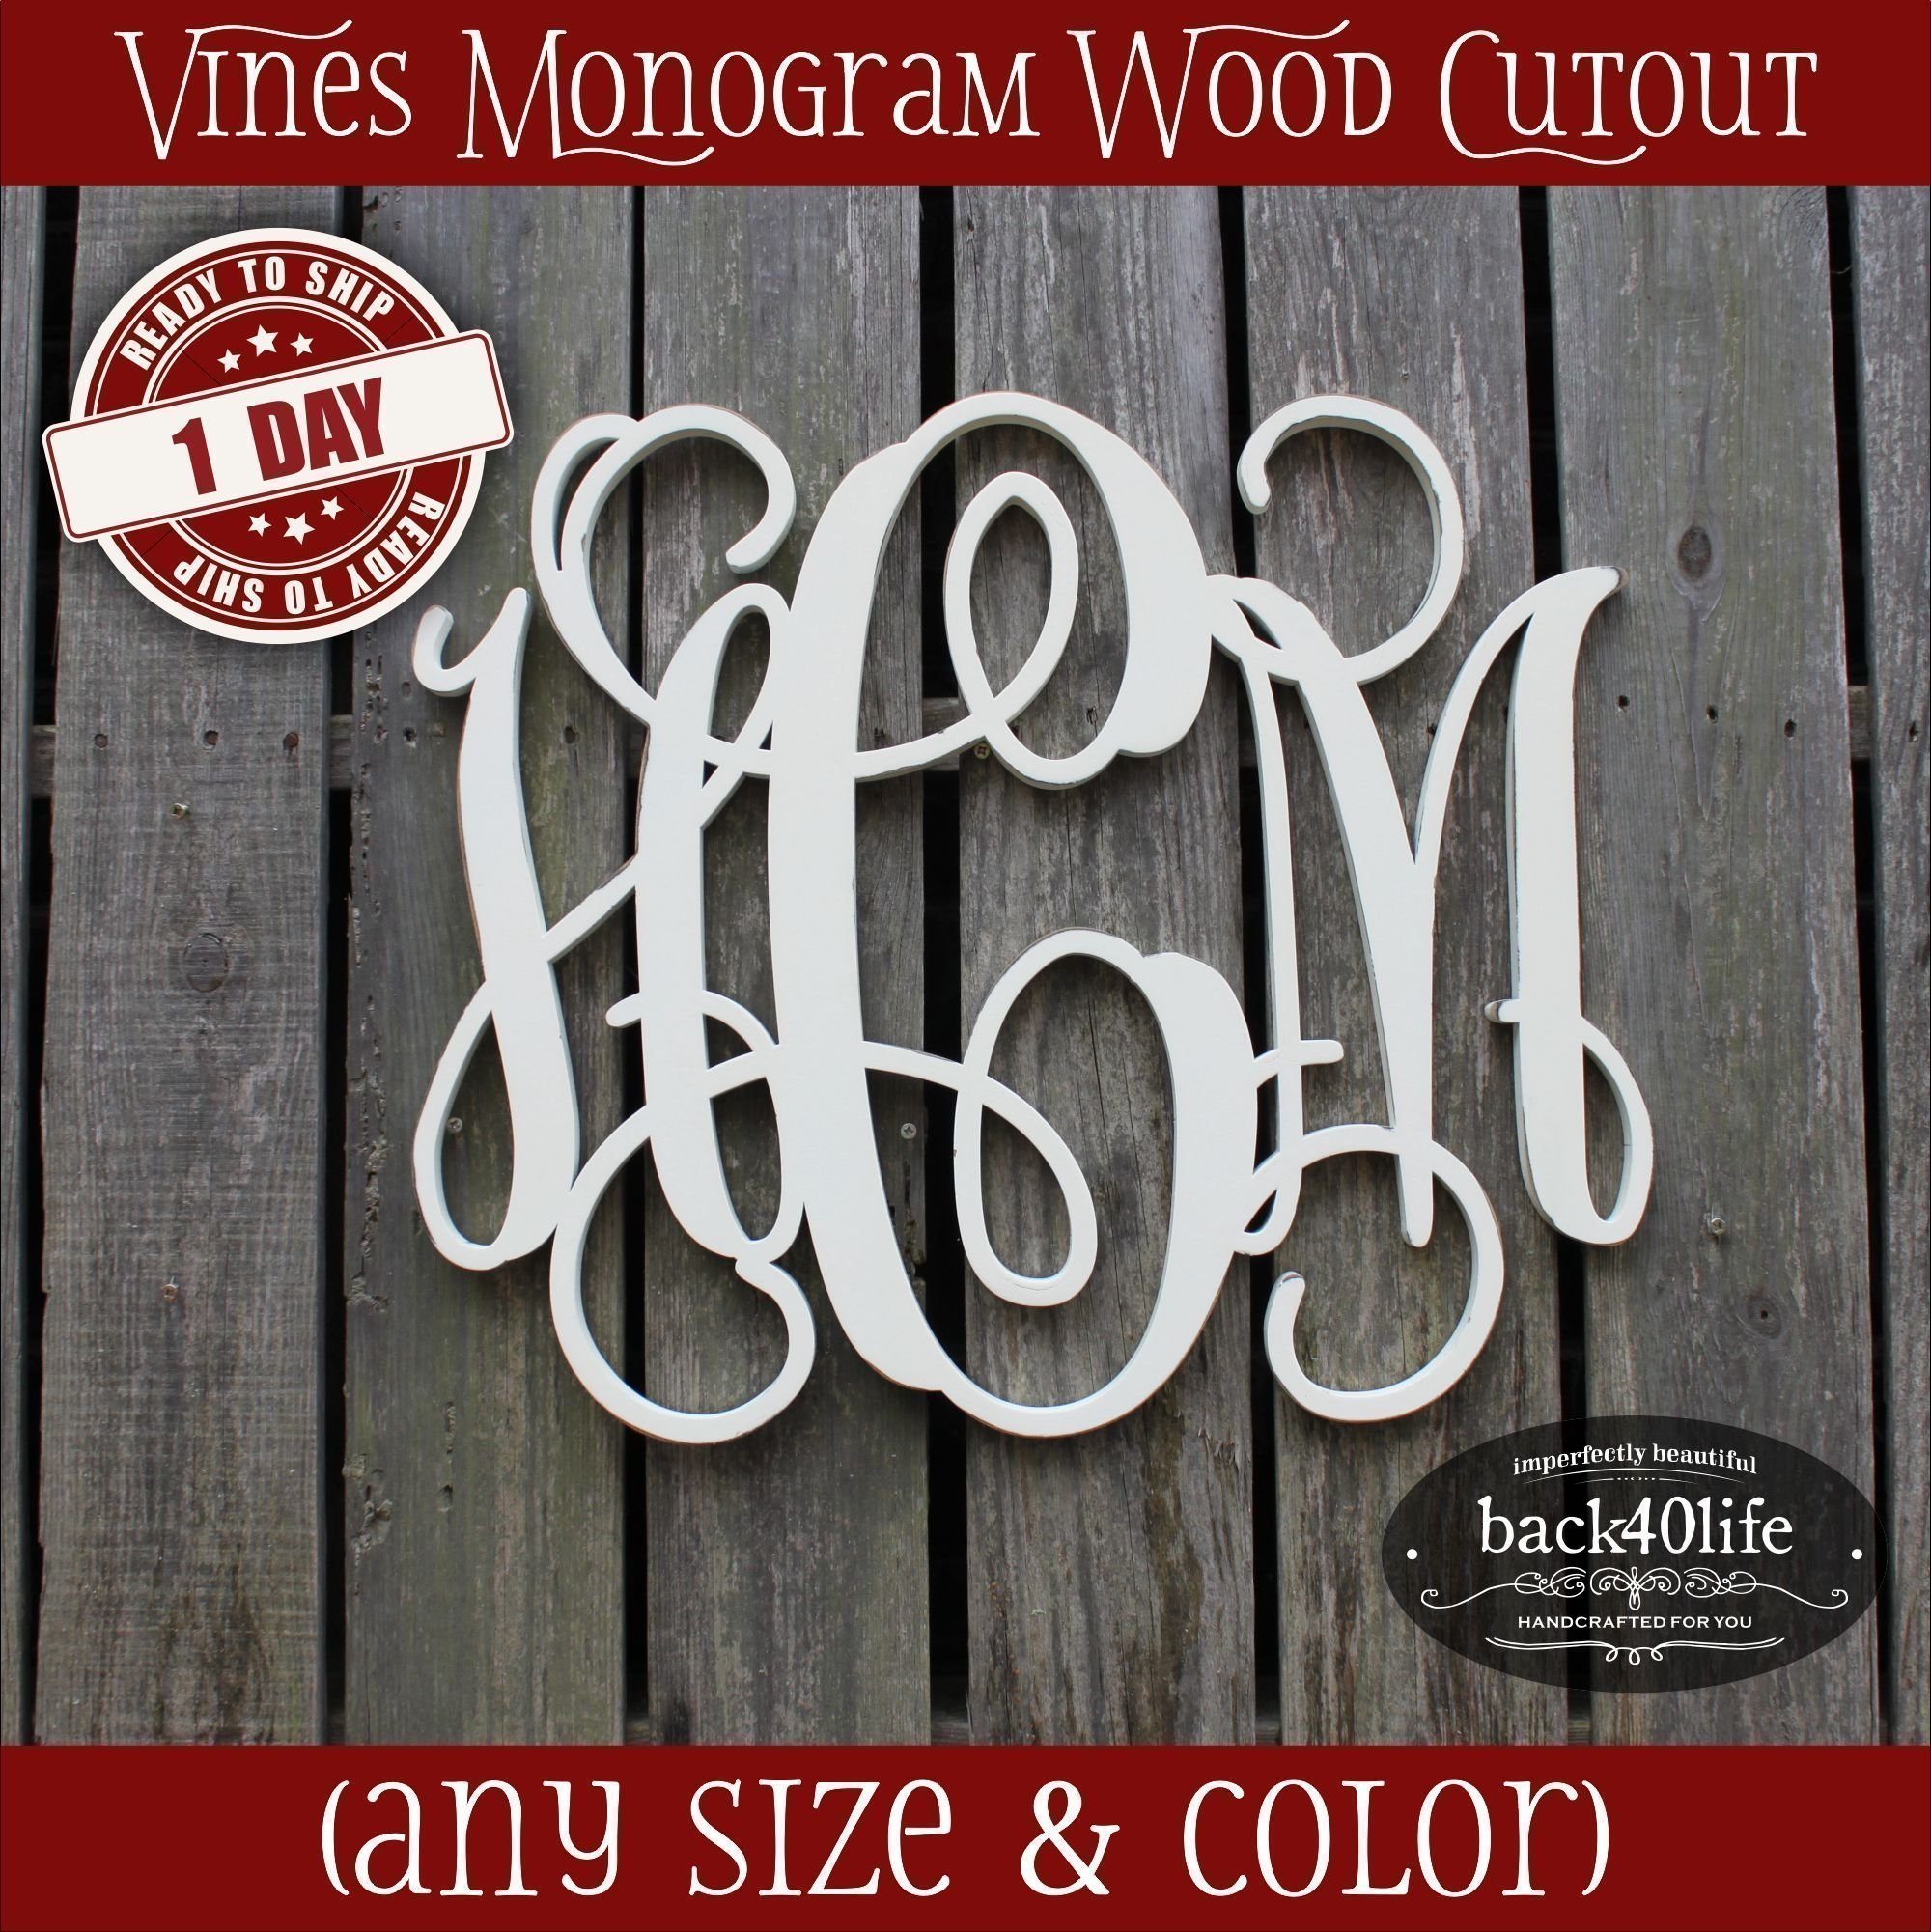 8-36 inch Vine Monogram Wood Letters Cutout Unfinished DIY or Painted Initial Decor Nursery Wooden Monogram